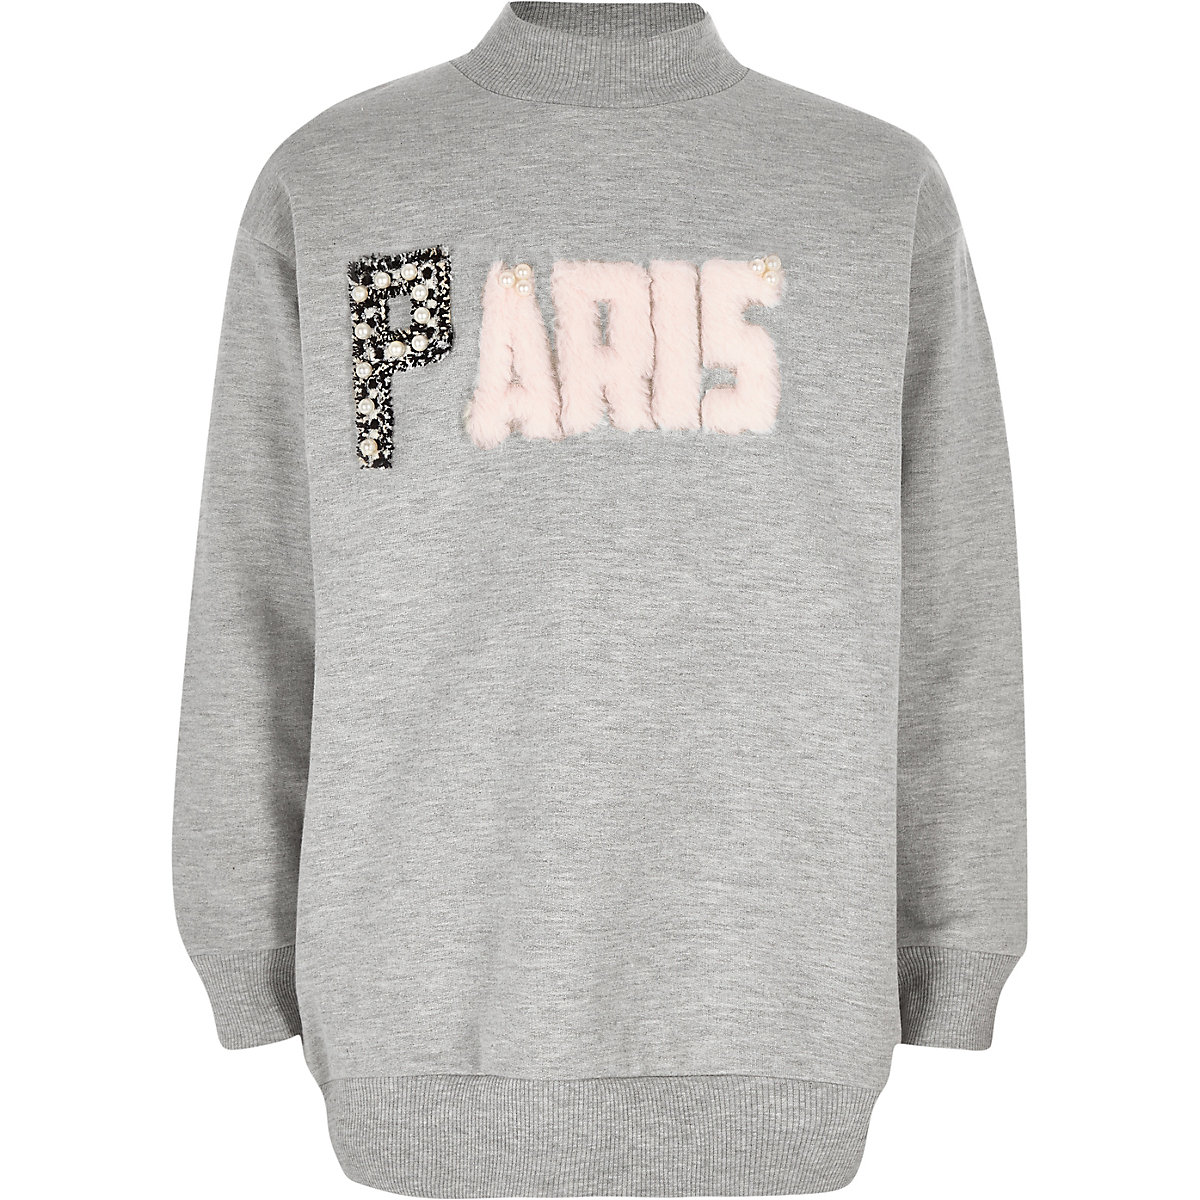 Girls grey 'Paris' sweatshirt